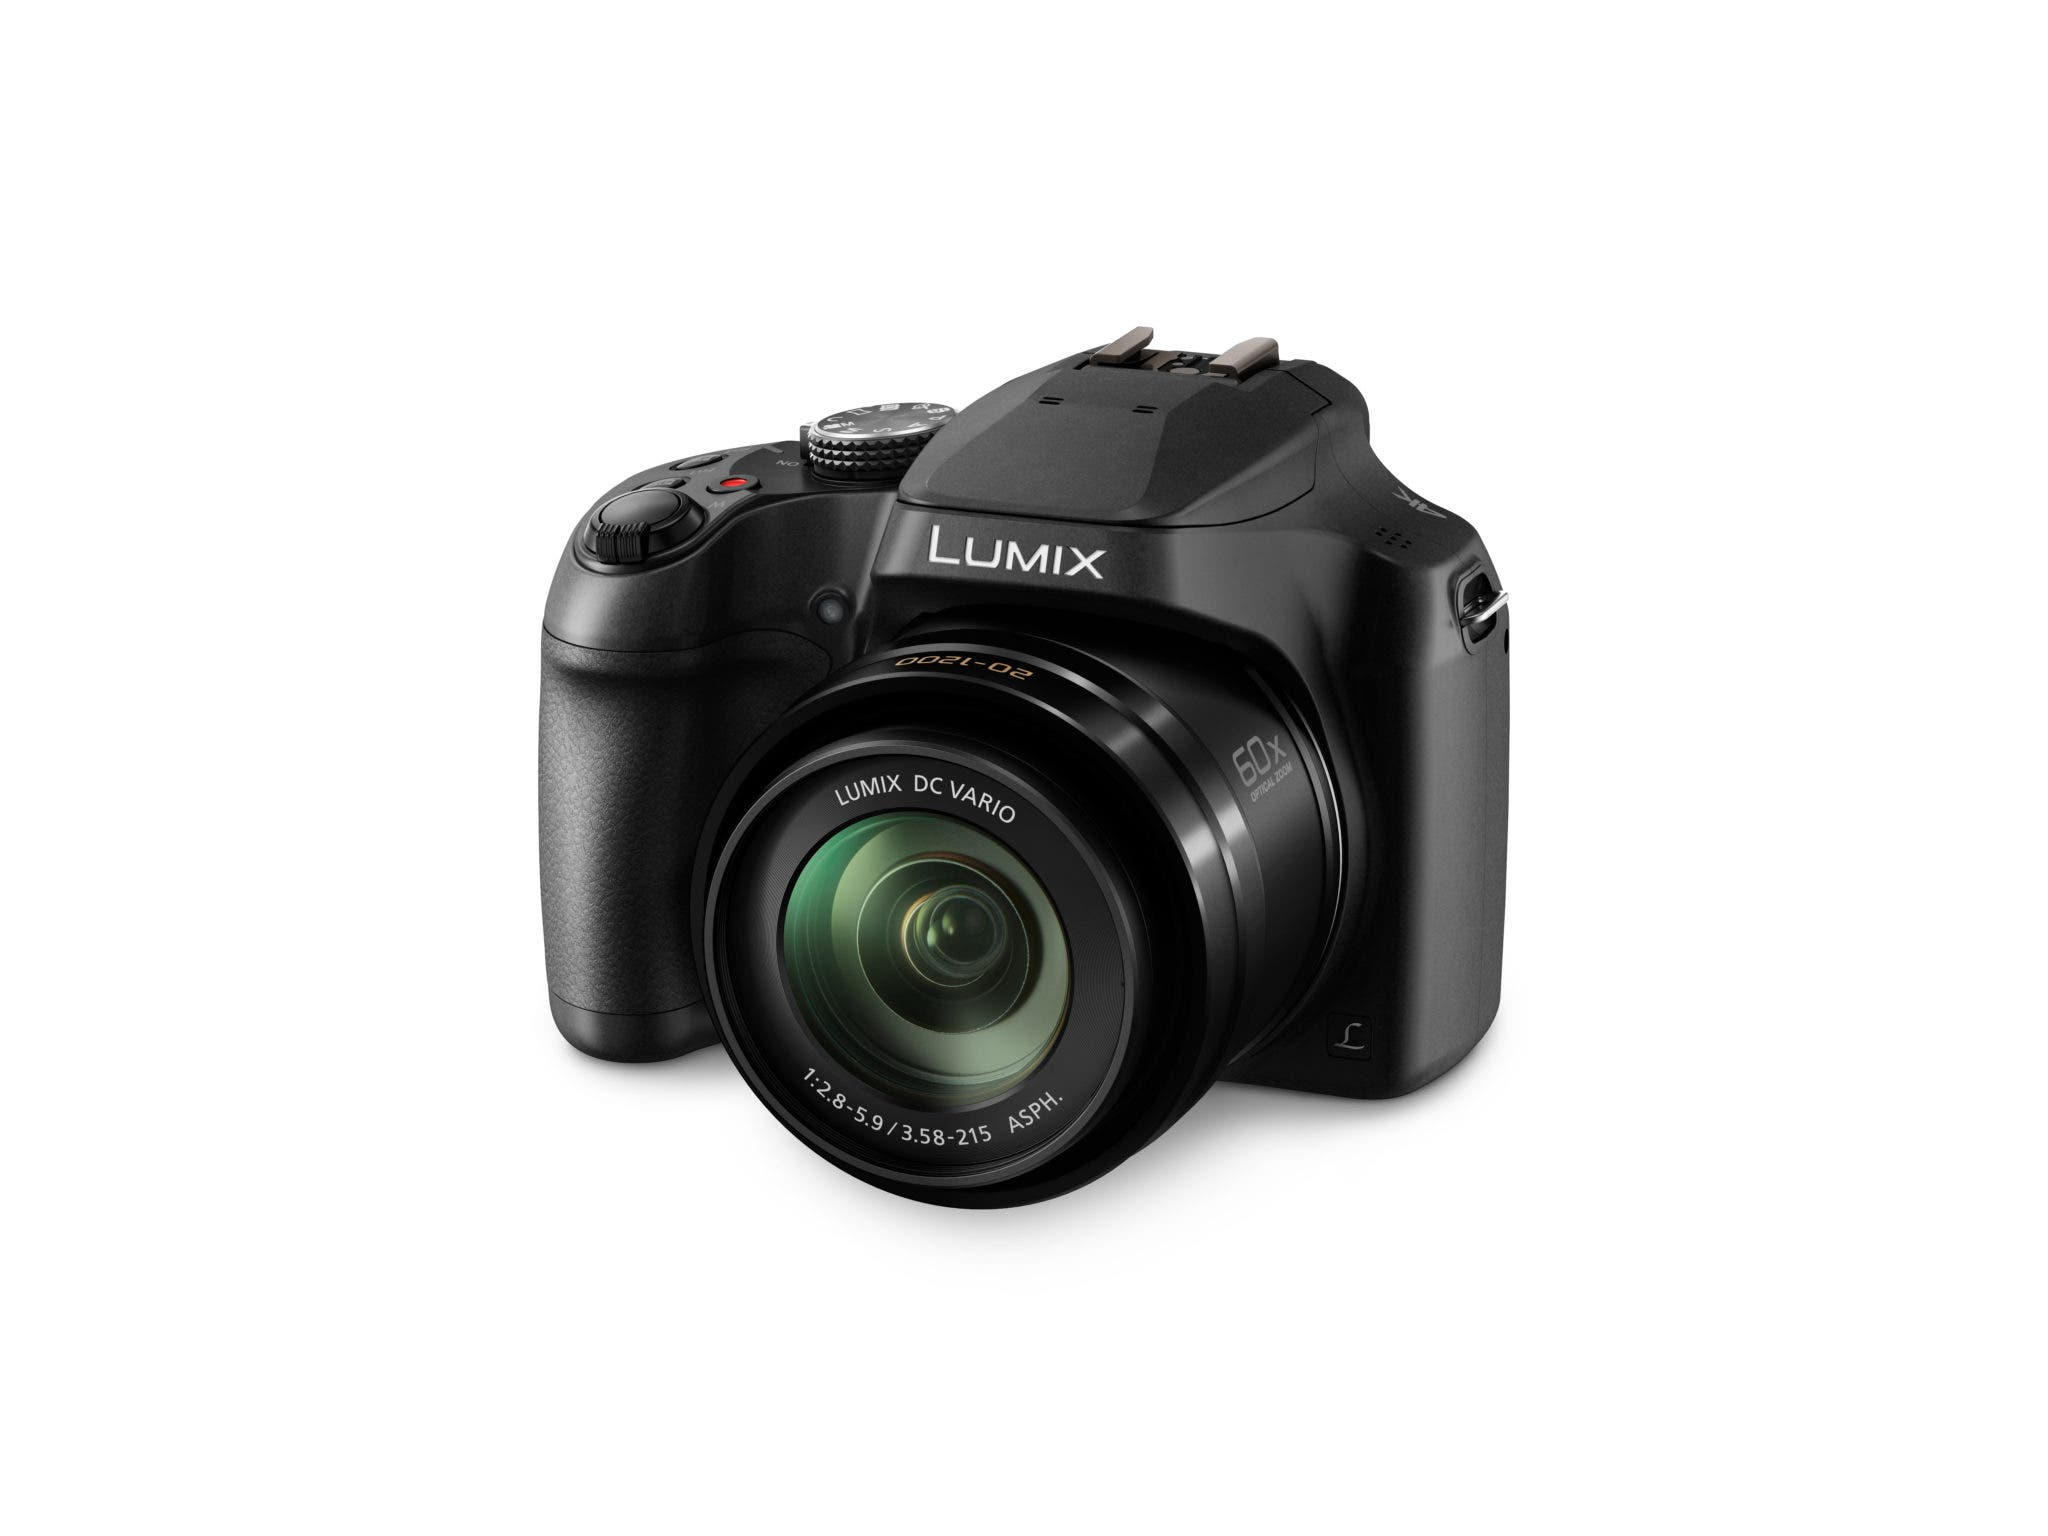 Panasonic Announces Lumix FZ80, An Ultra-Wide Zoom with Touch Focus, 4K Video, and 4K Photo